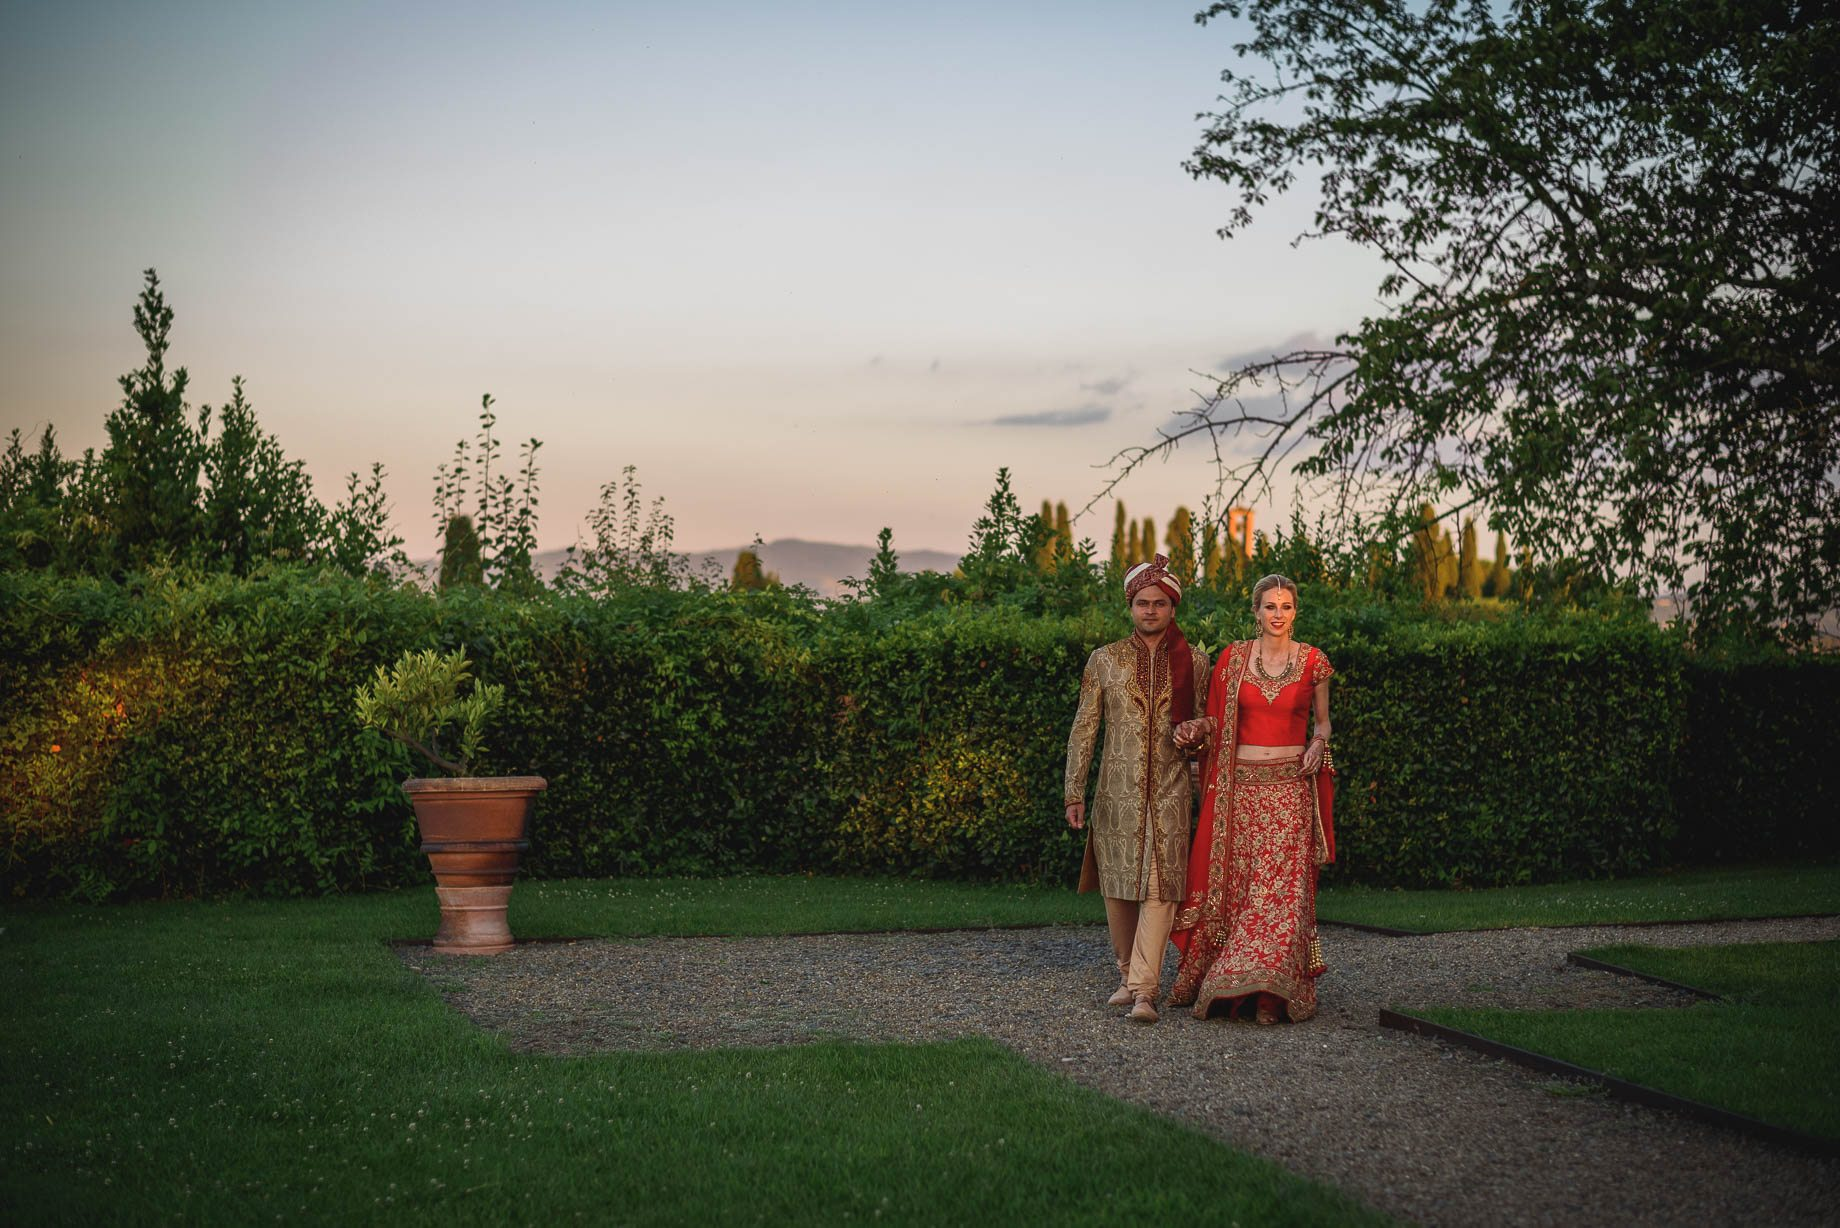 Tuscany wedding photography - Roisin and Moubin - Guy Collier Photography (161 of 194)